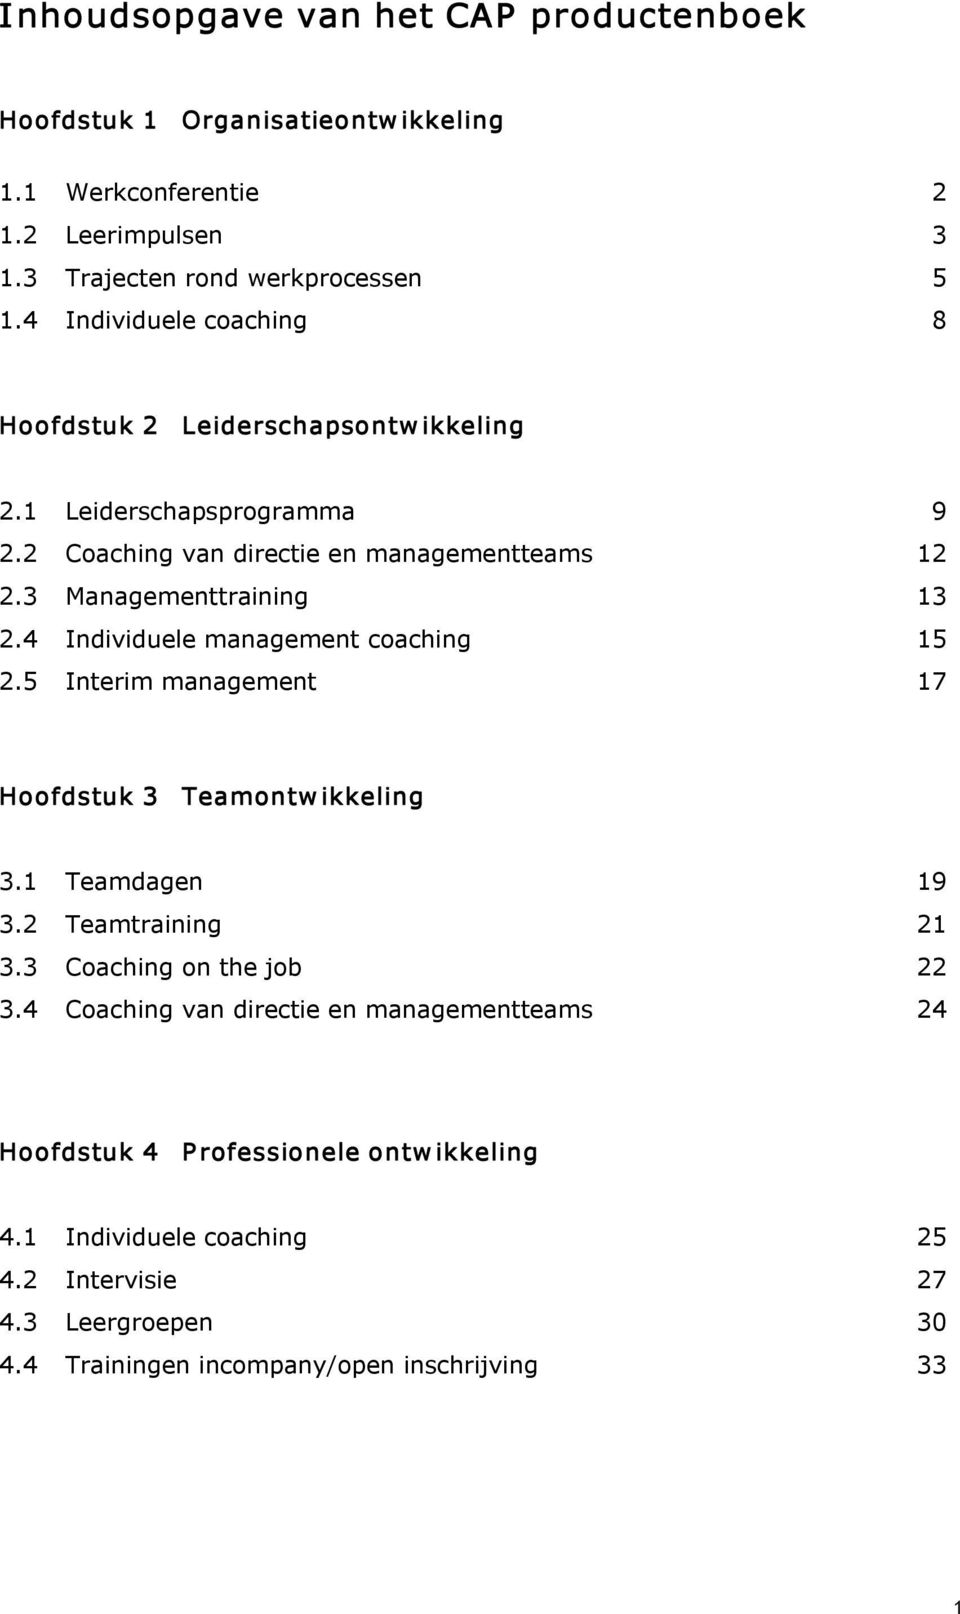 4 Individuele management coaching 15 2.5 Interim management 17 Hoofdstuk 3 Teamontw ikkeling 3.1 Teamdagen 19 3.2 Teamtraining 21 3.3 Coaching on the job 22 3.